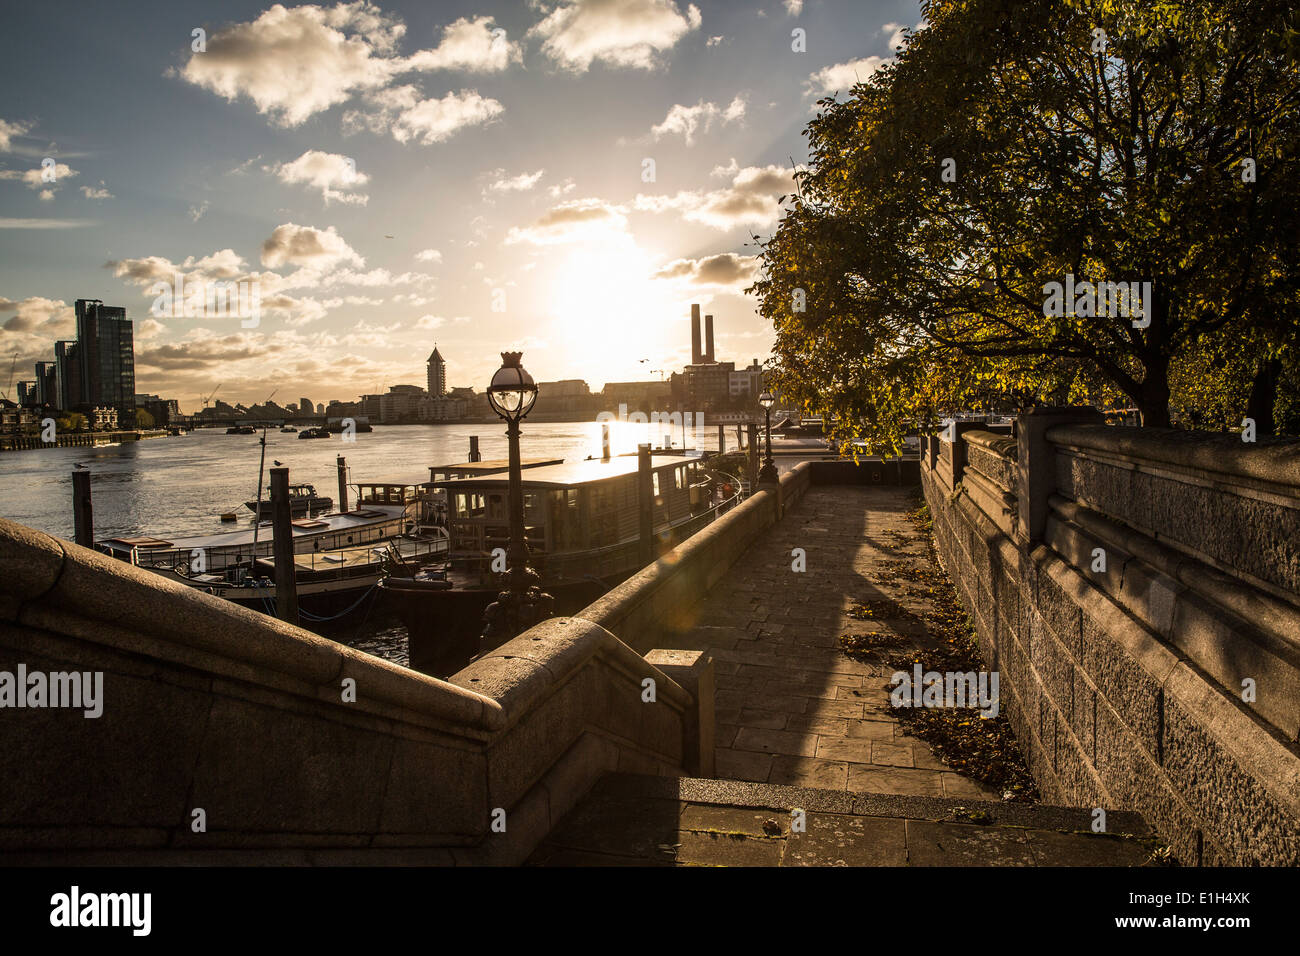 Chelsea Embankment London High Resolution Stock Photography And Images Alamy